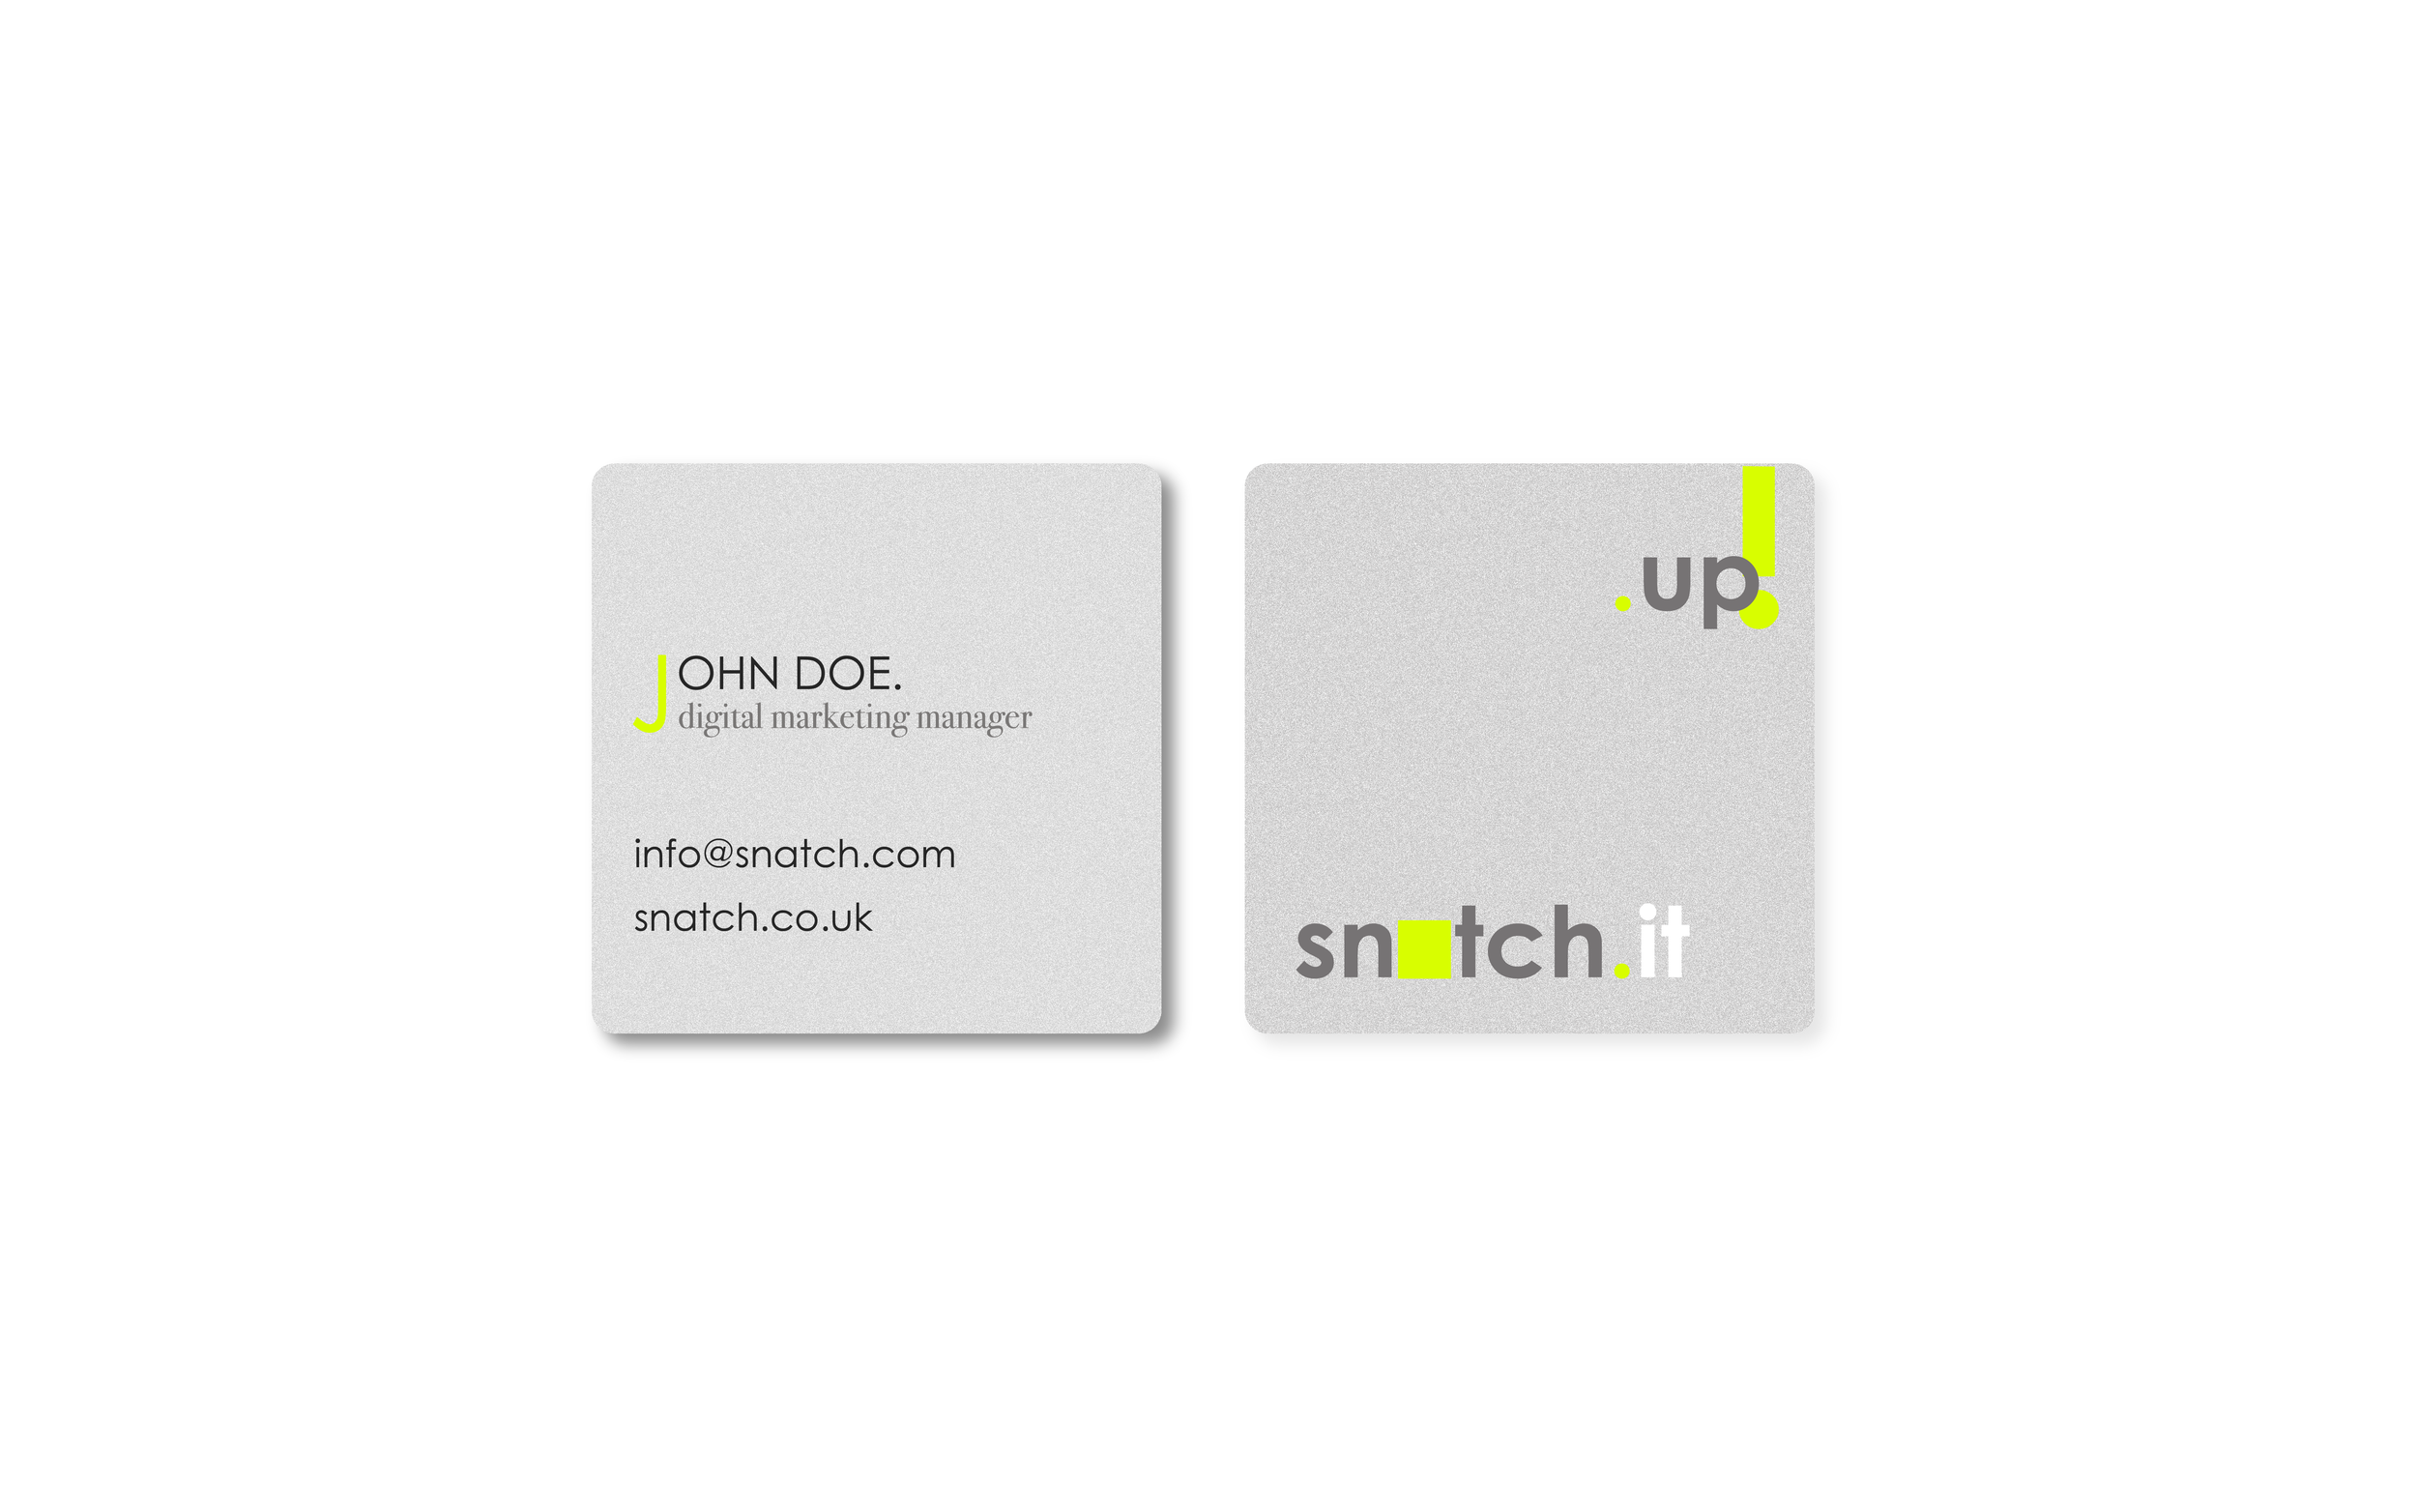 snatch_ID_business card.png